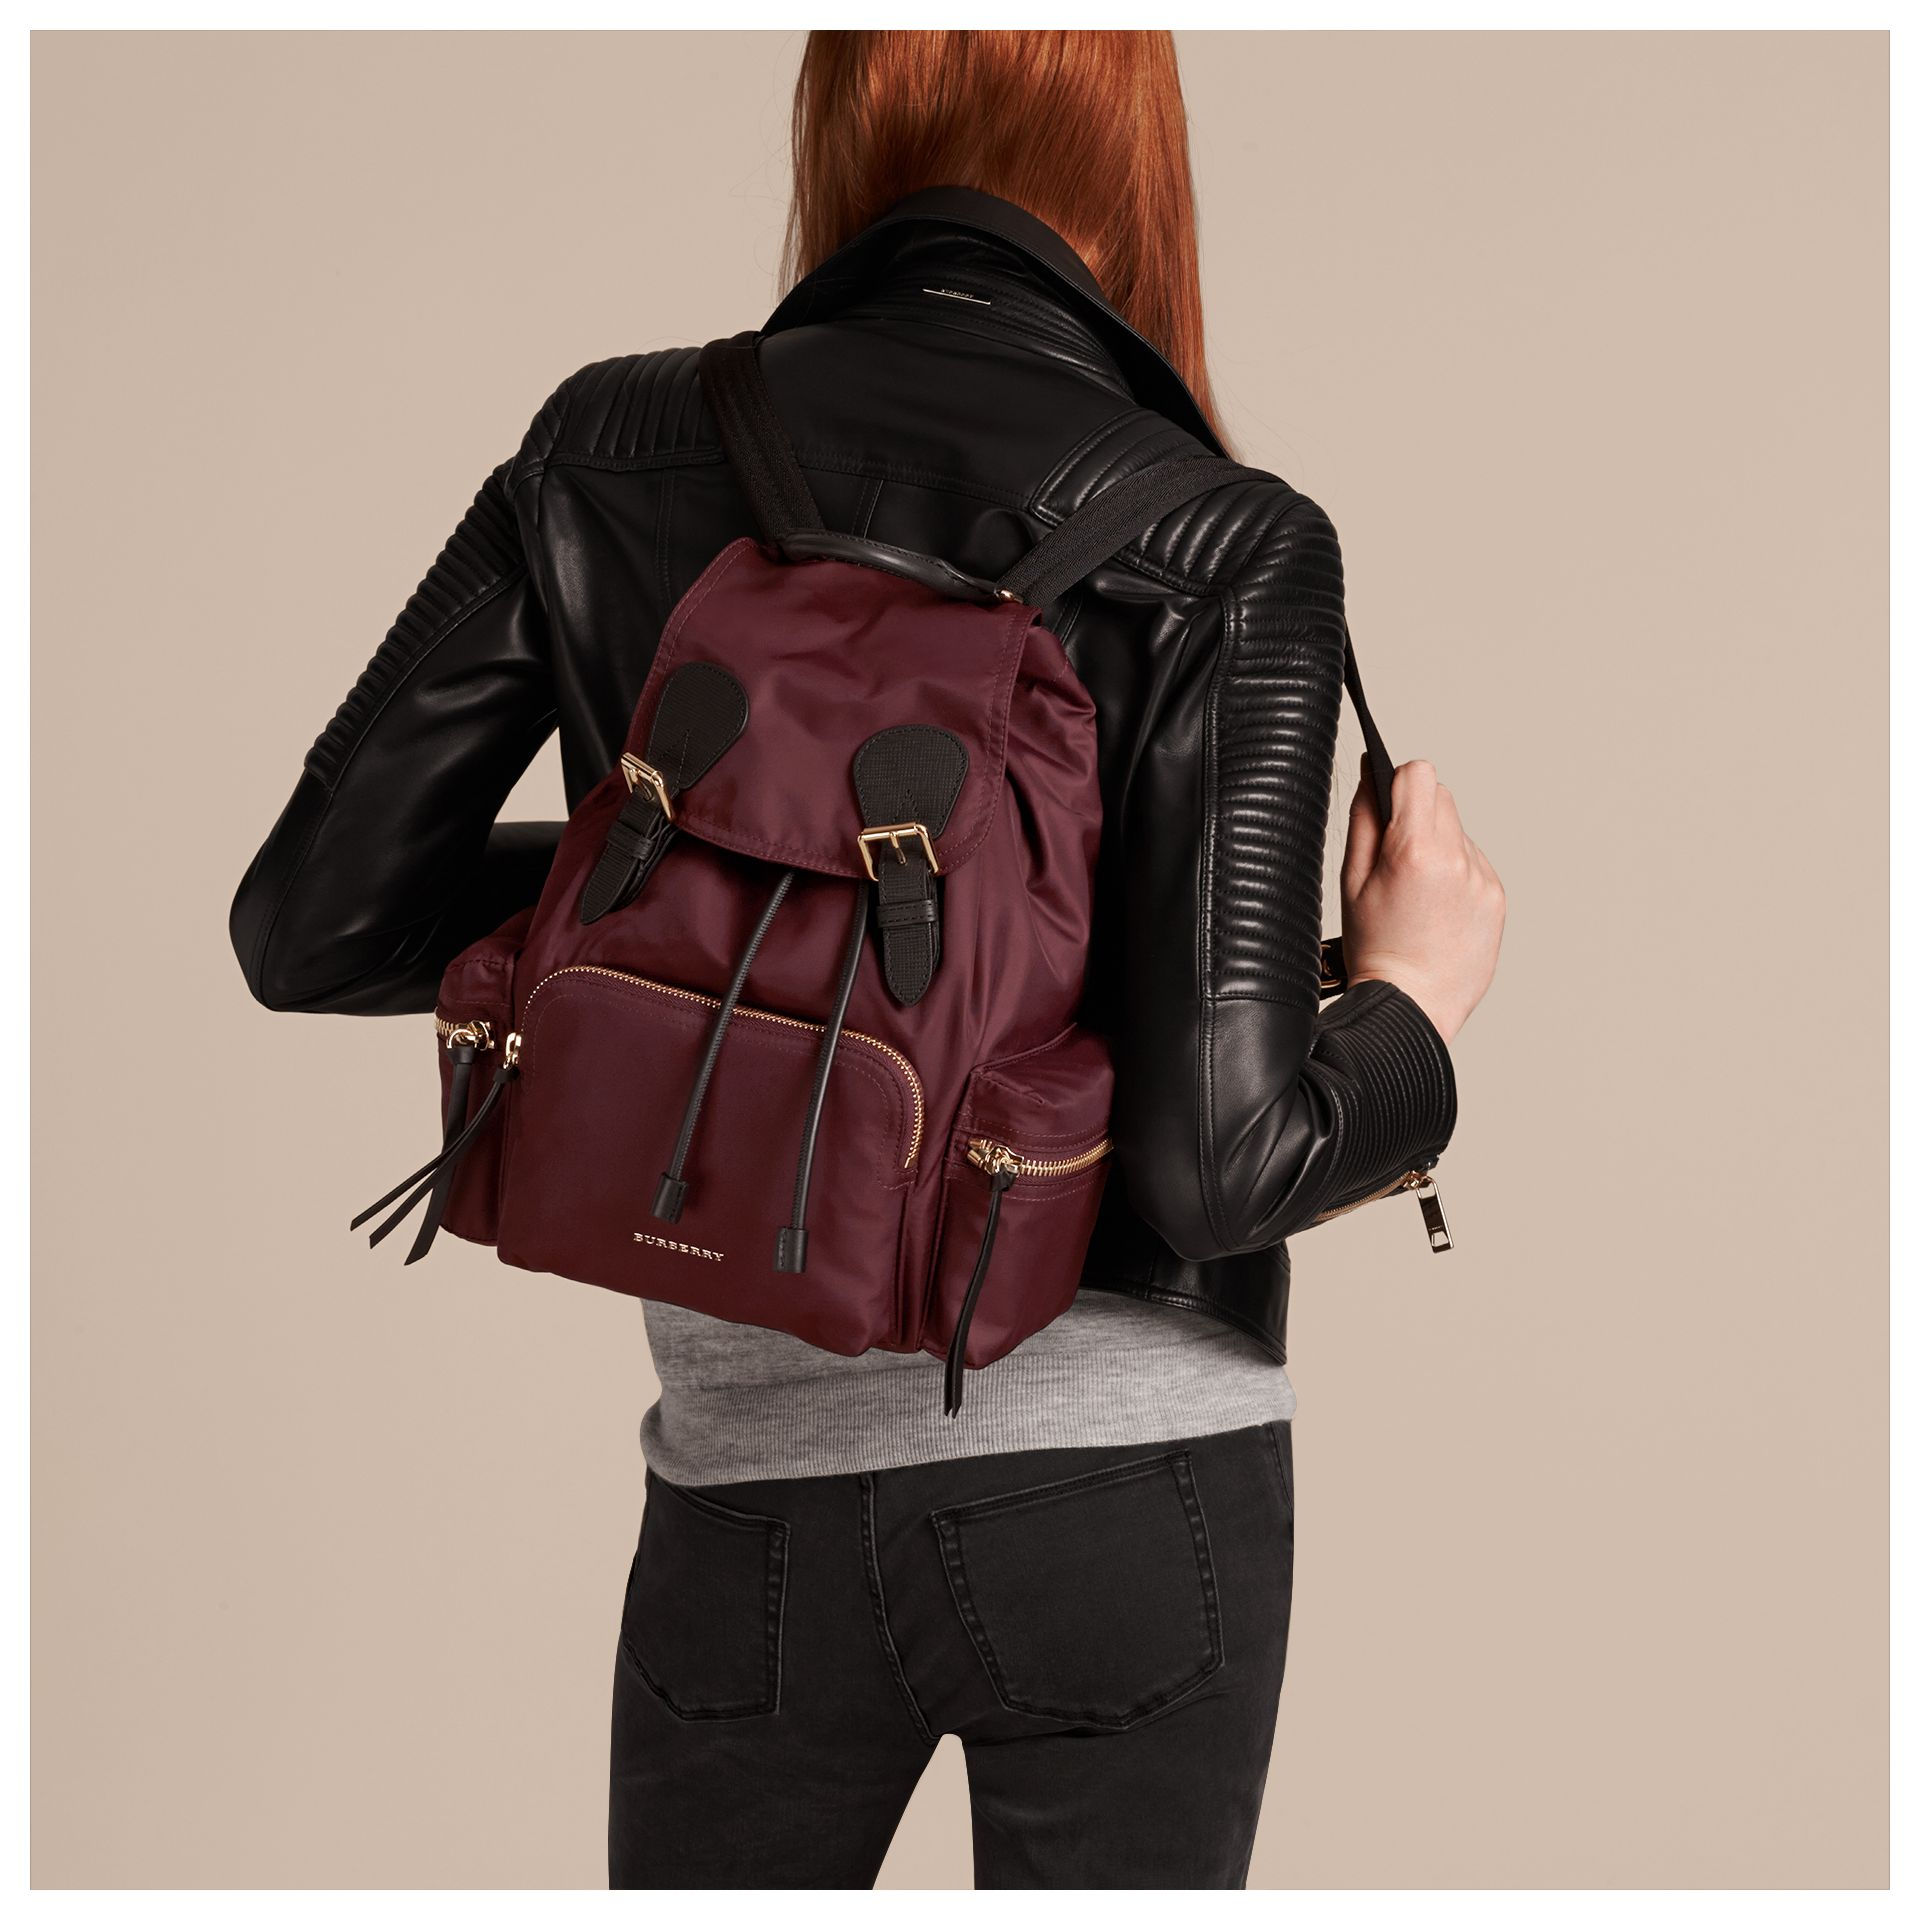 Burgundy red The Medium Rucksack in Technical Nylon and Leather Burgundy Red - gallery image 3